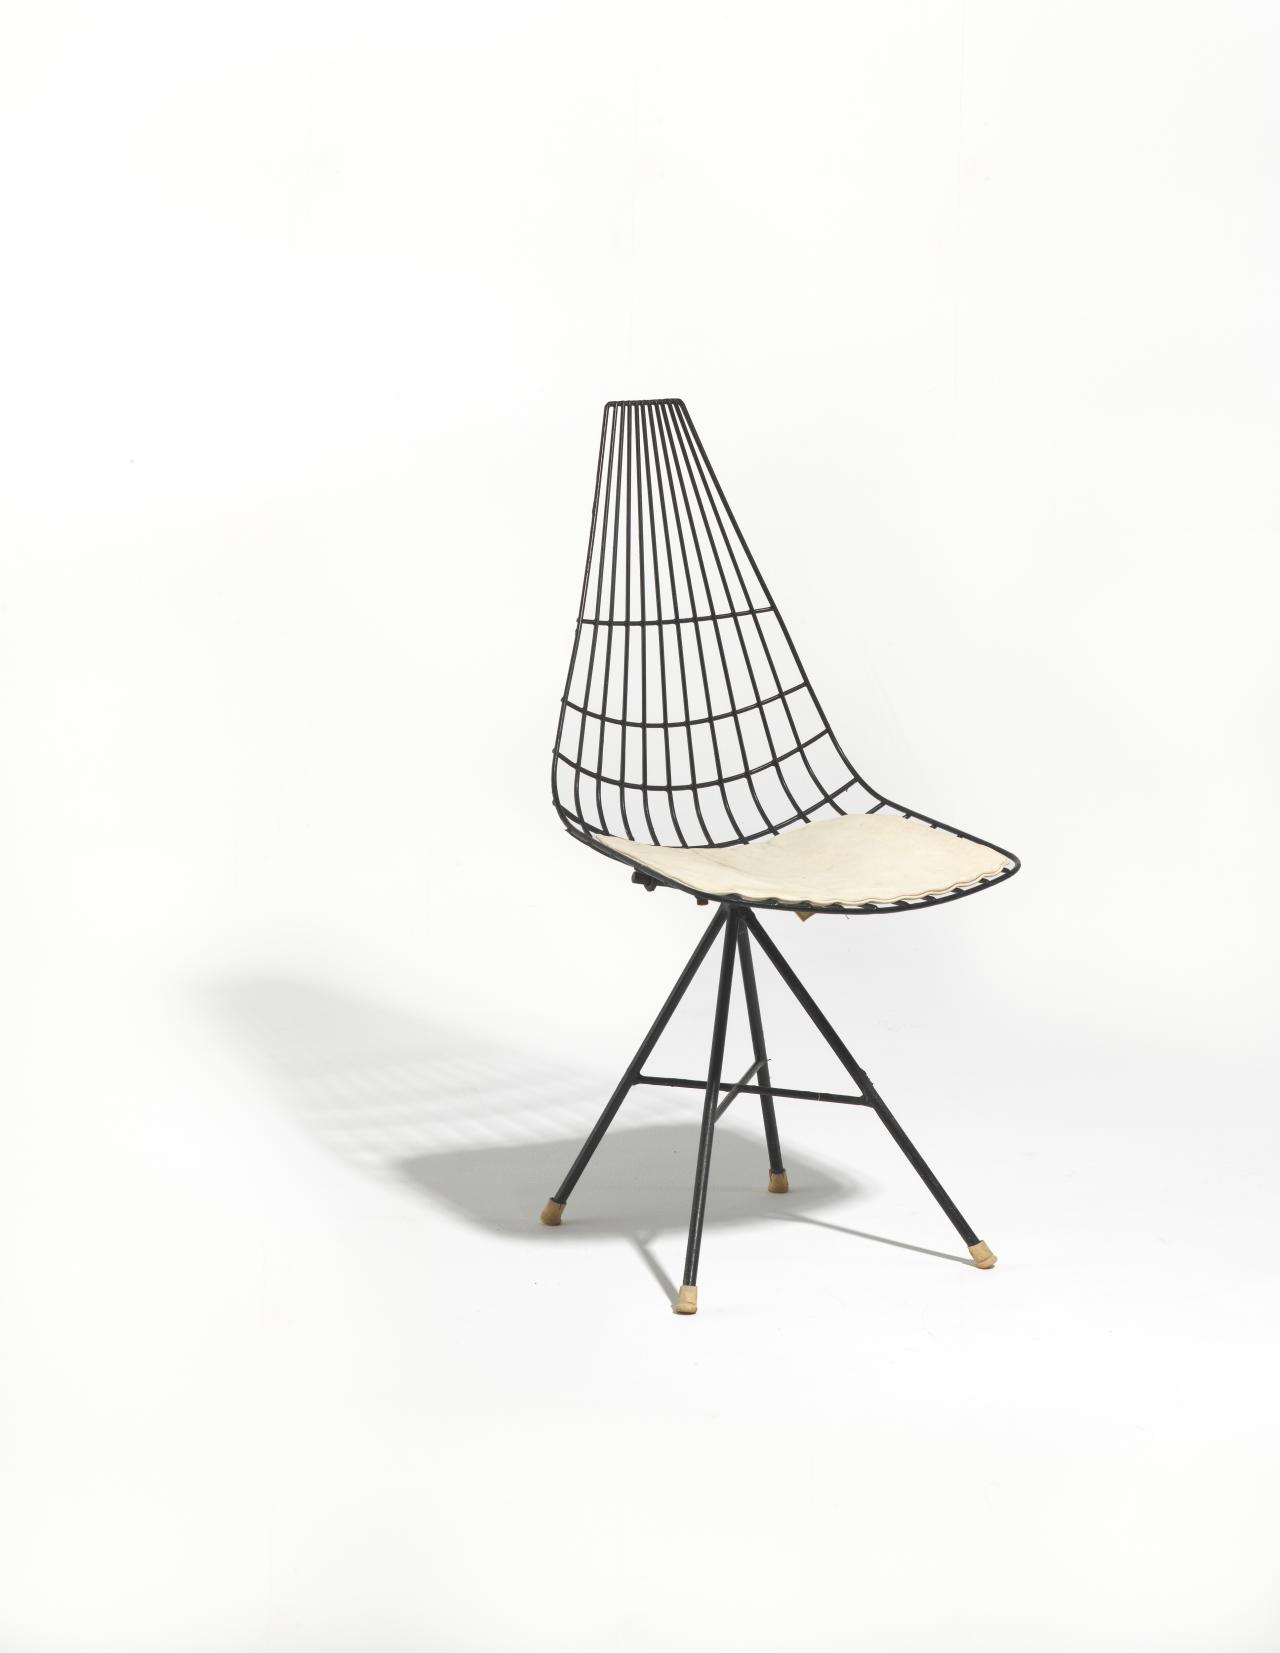 Michael Hirst DC 601A chair